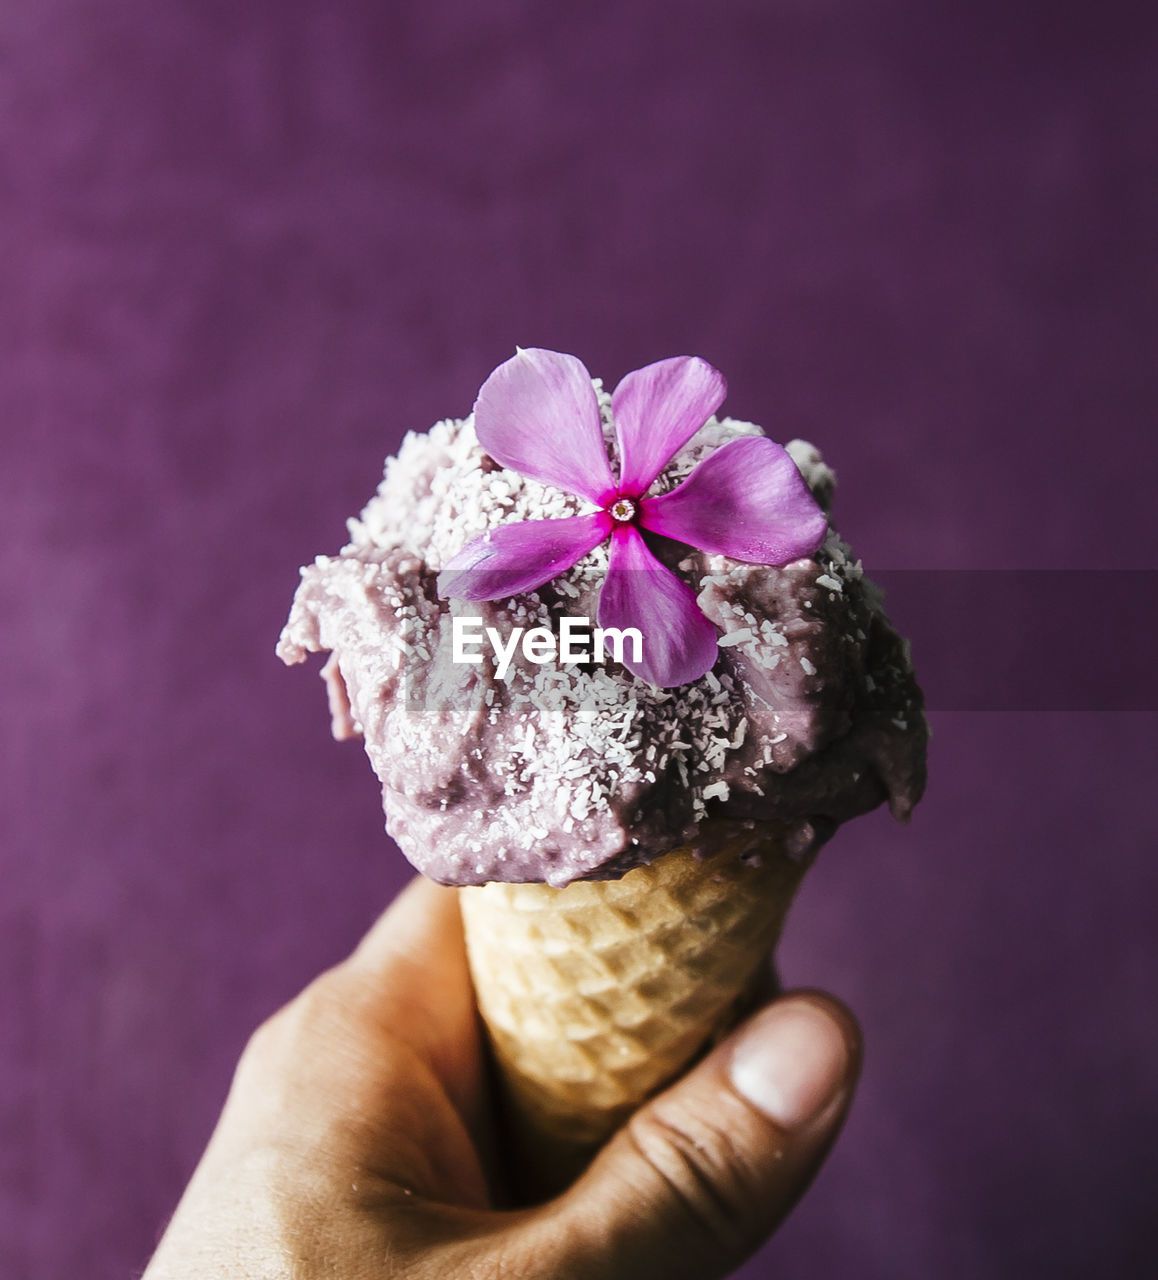 freshness, human hand, holding, flowering plant, hand, flower, human body part, ice cream, plant, ice cream cone, sweet food, frozen, one person, close-up, sweet, cone, pink color, food, focus on foreground, dairy product, temptation, purple, flower head, finger